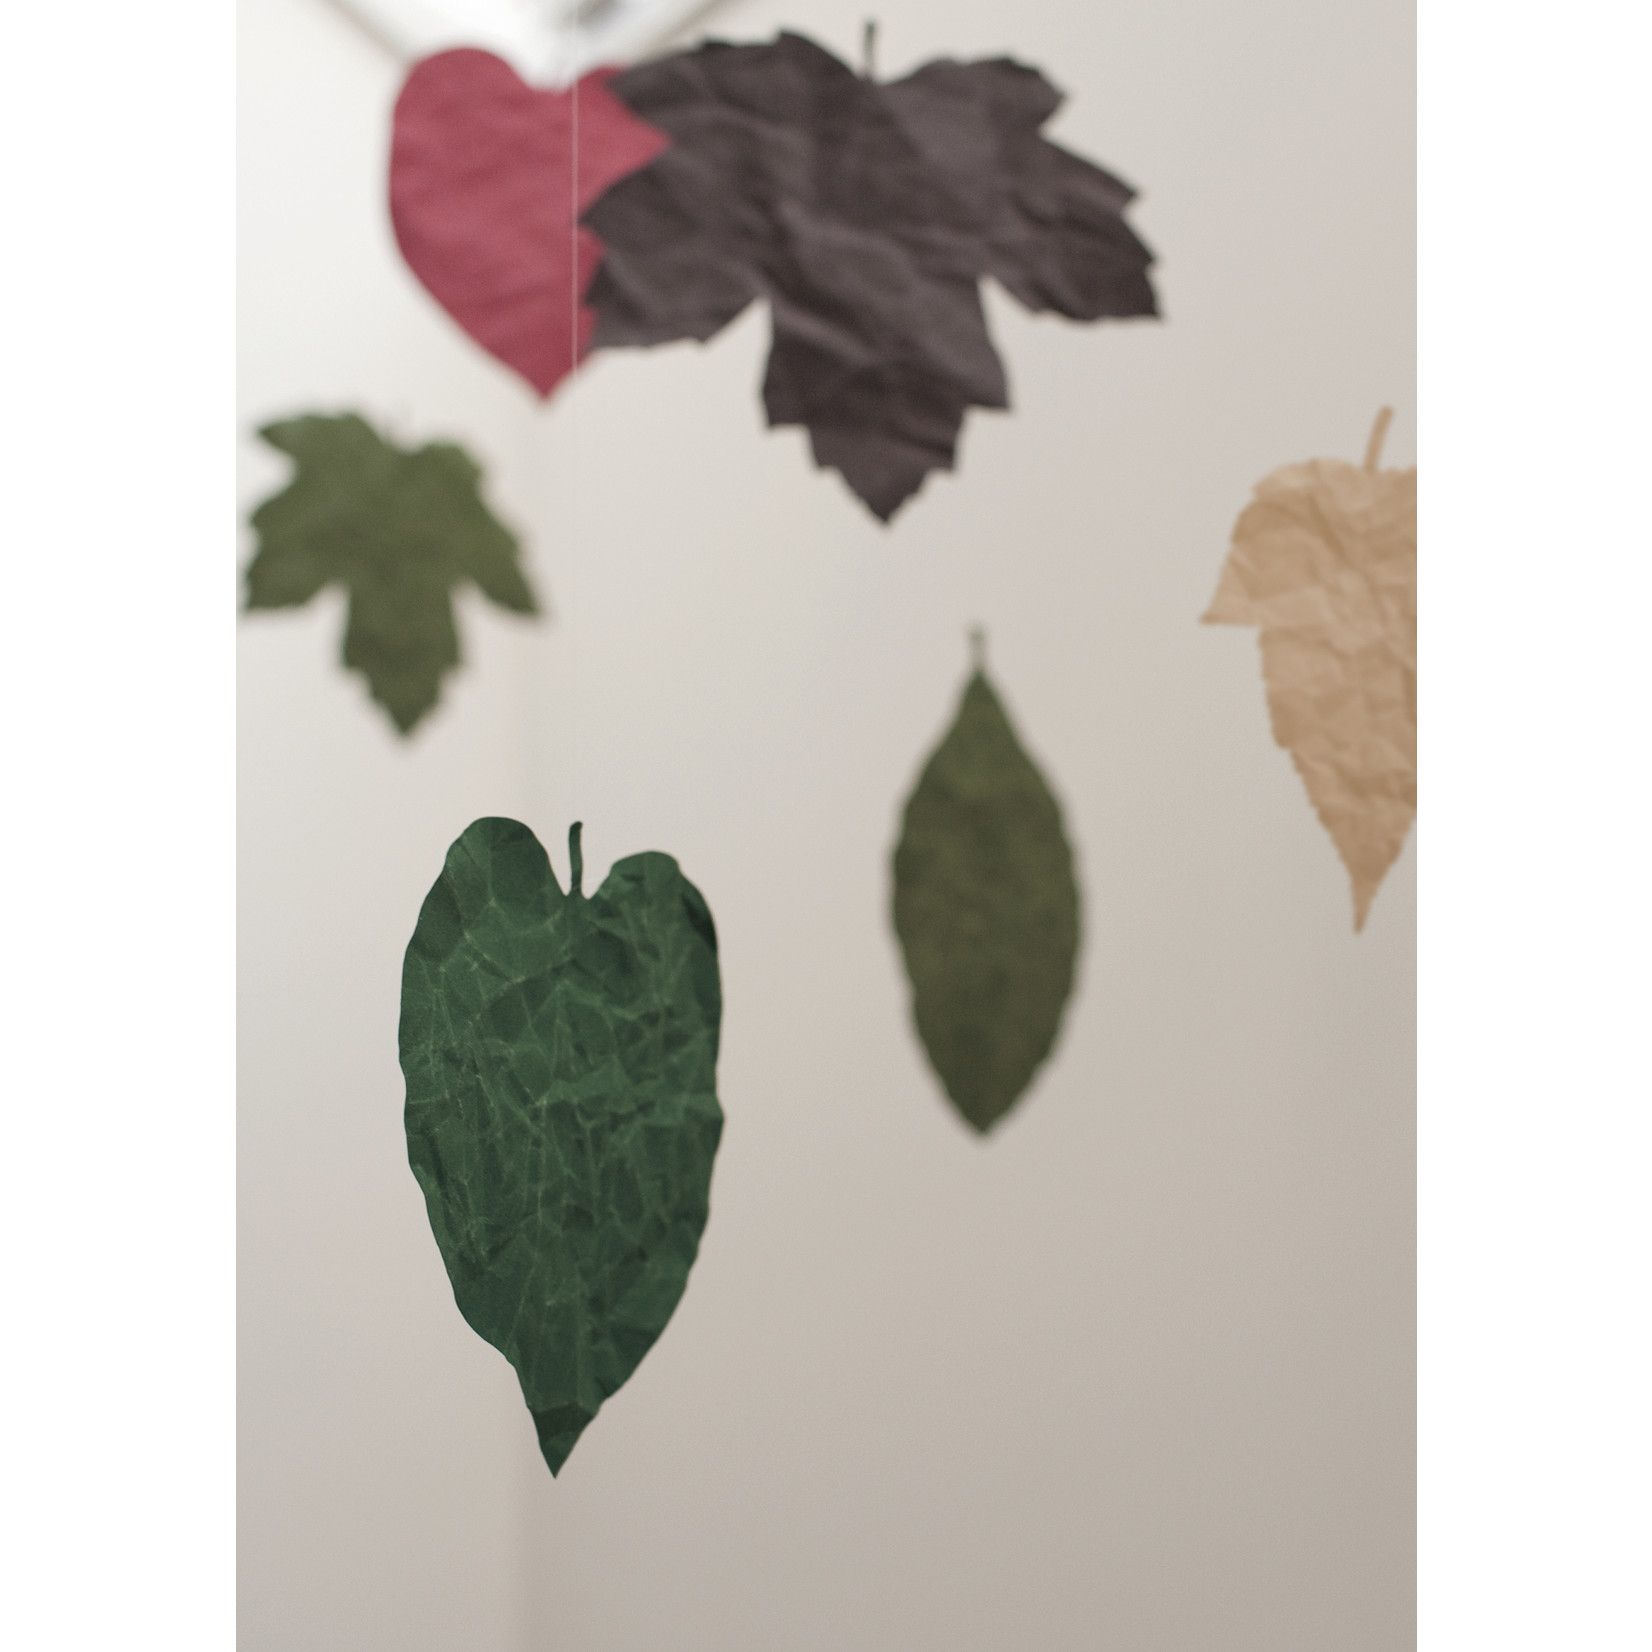 Based on Roots SIWA leaf bookmarks and cards